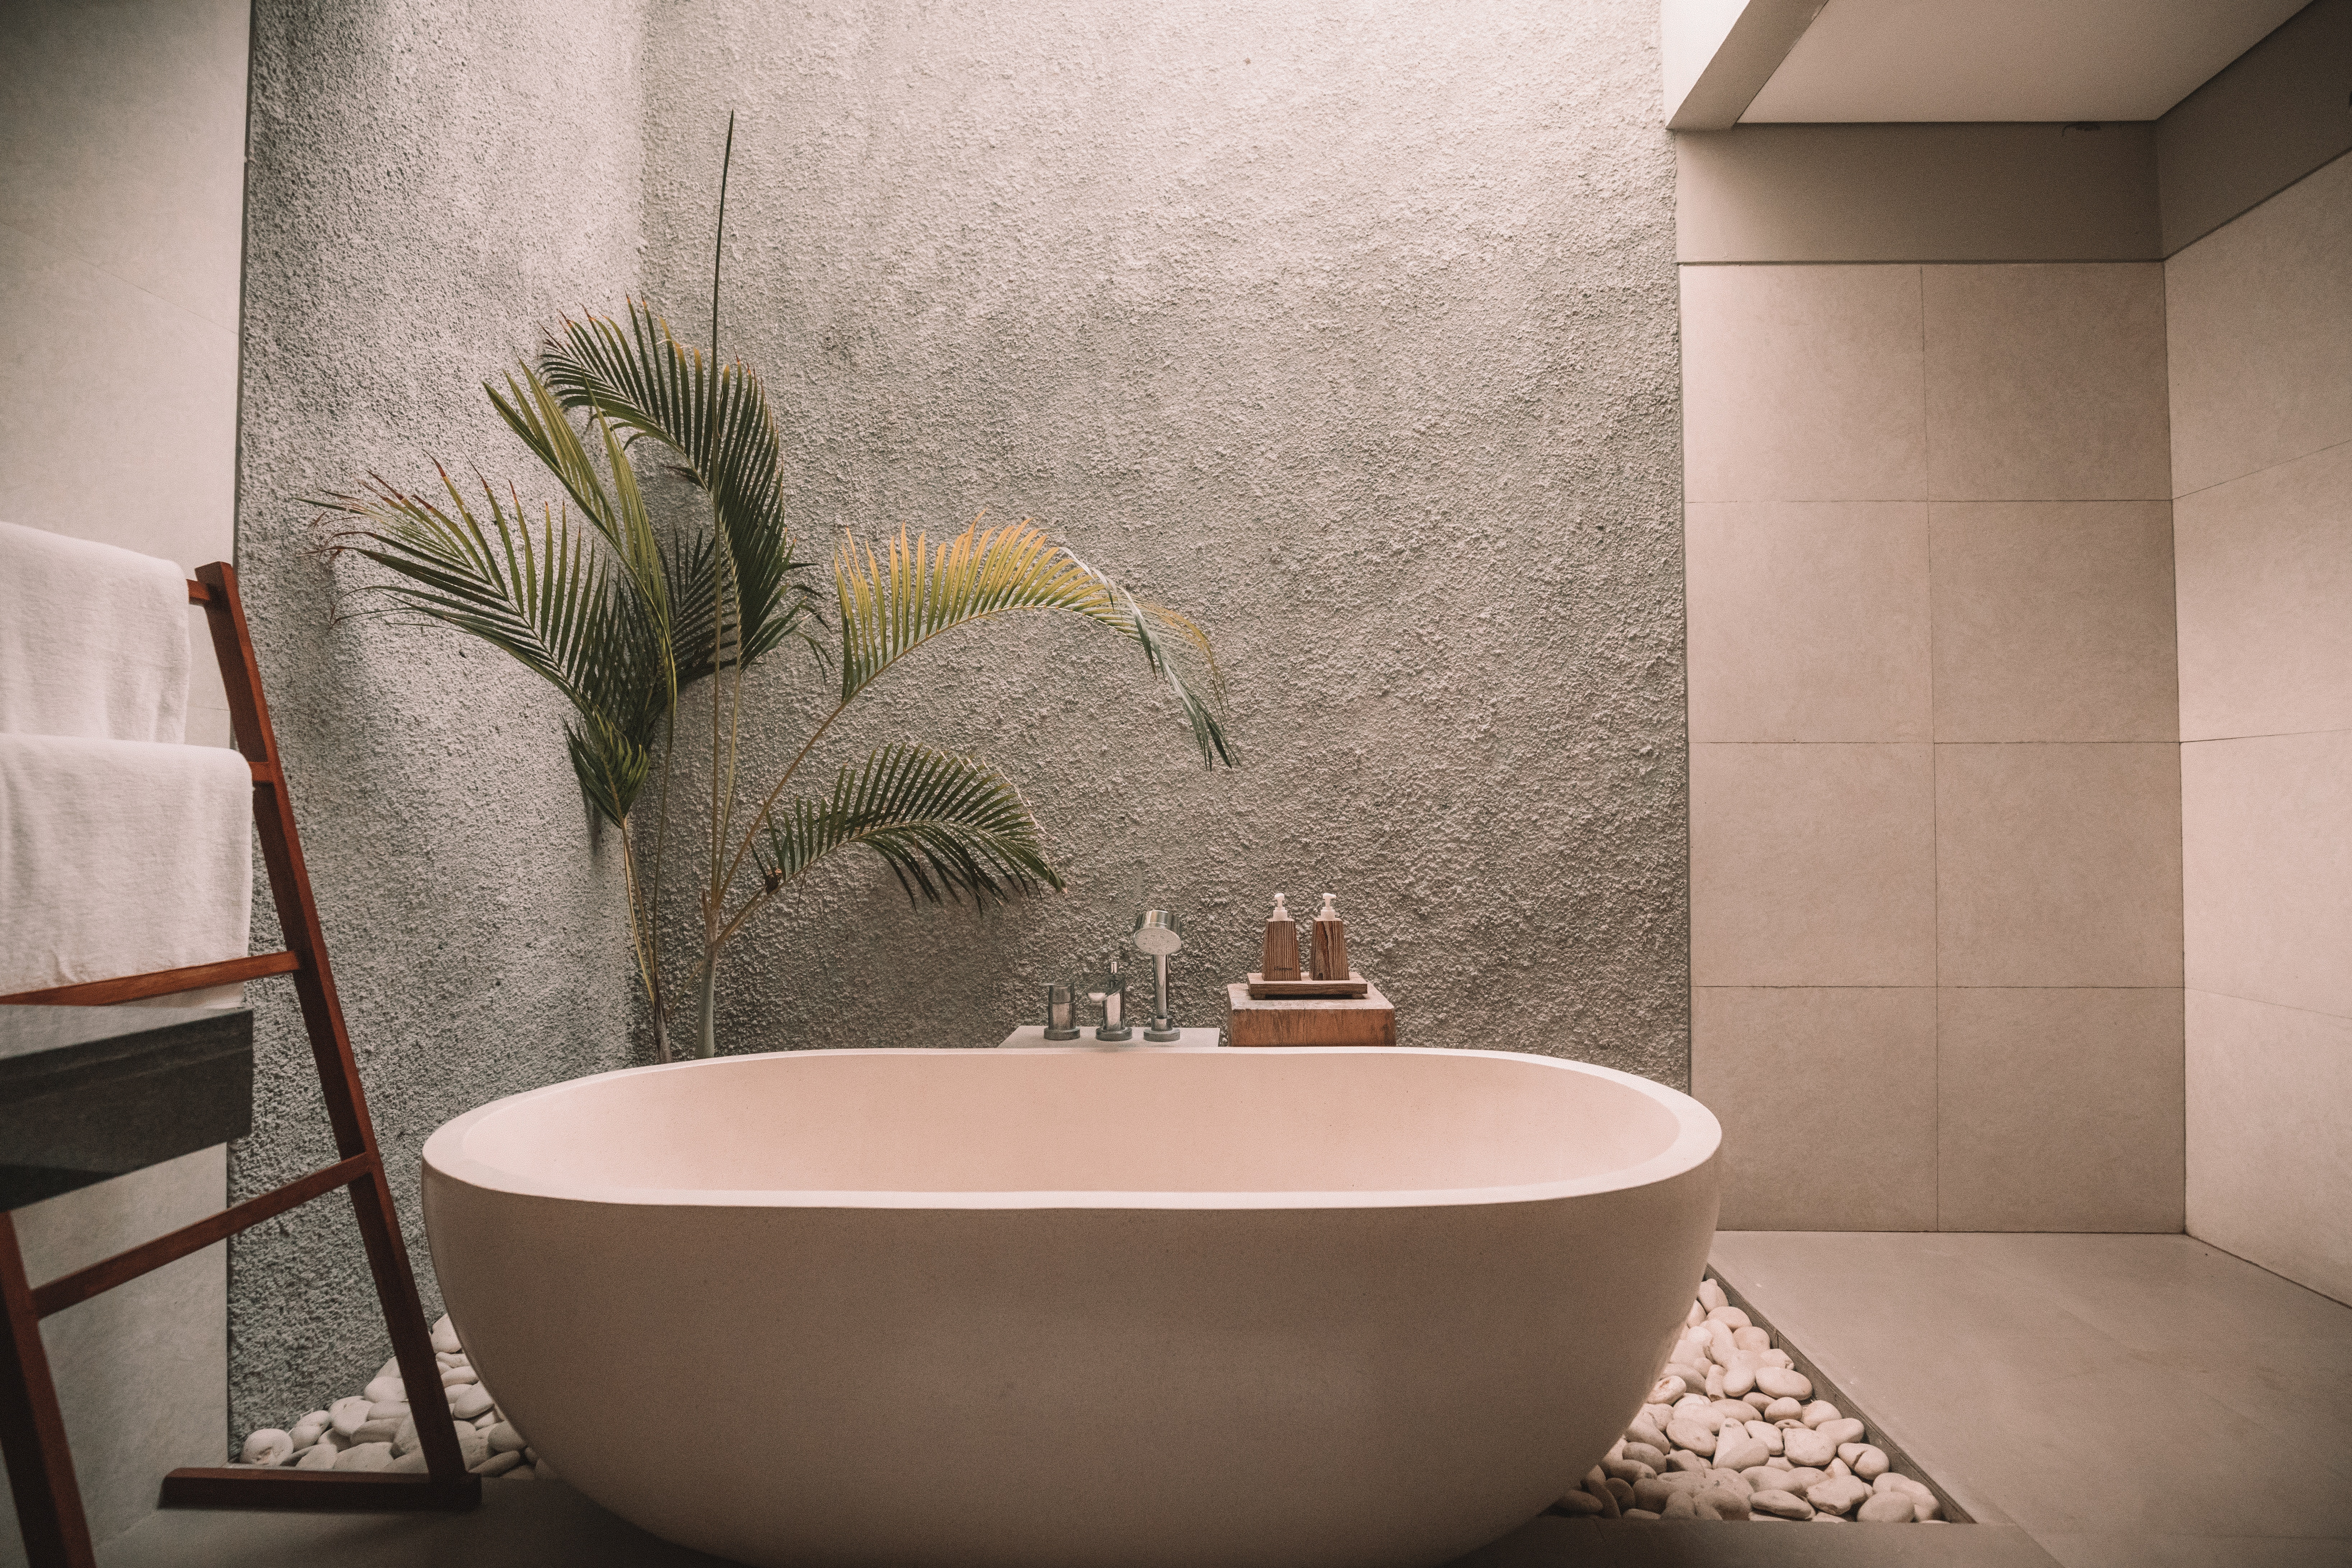 Superieur How Much Does A Bathroom Add To The Value Of A House